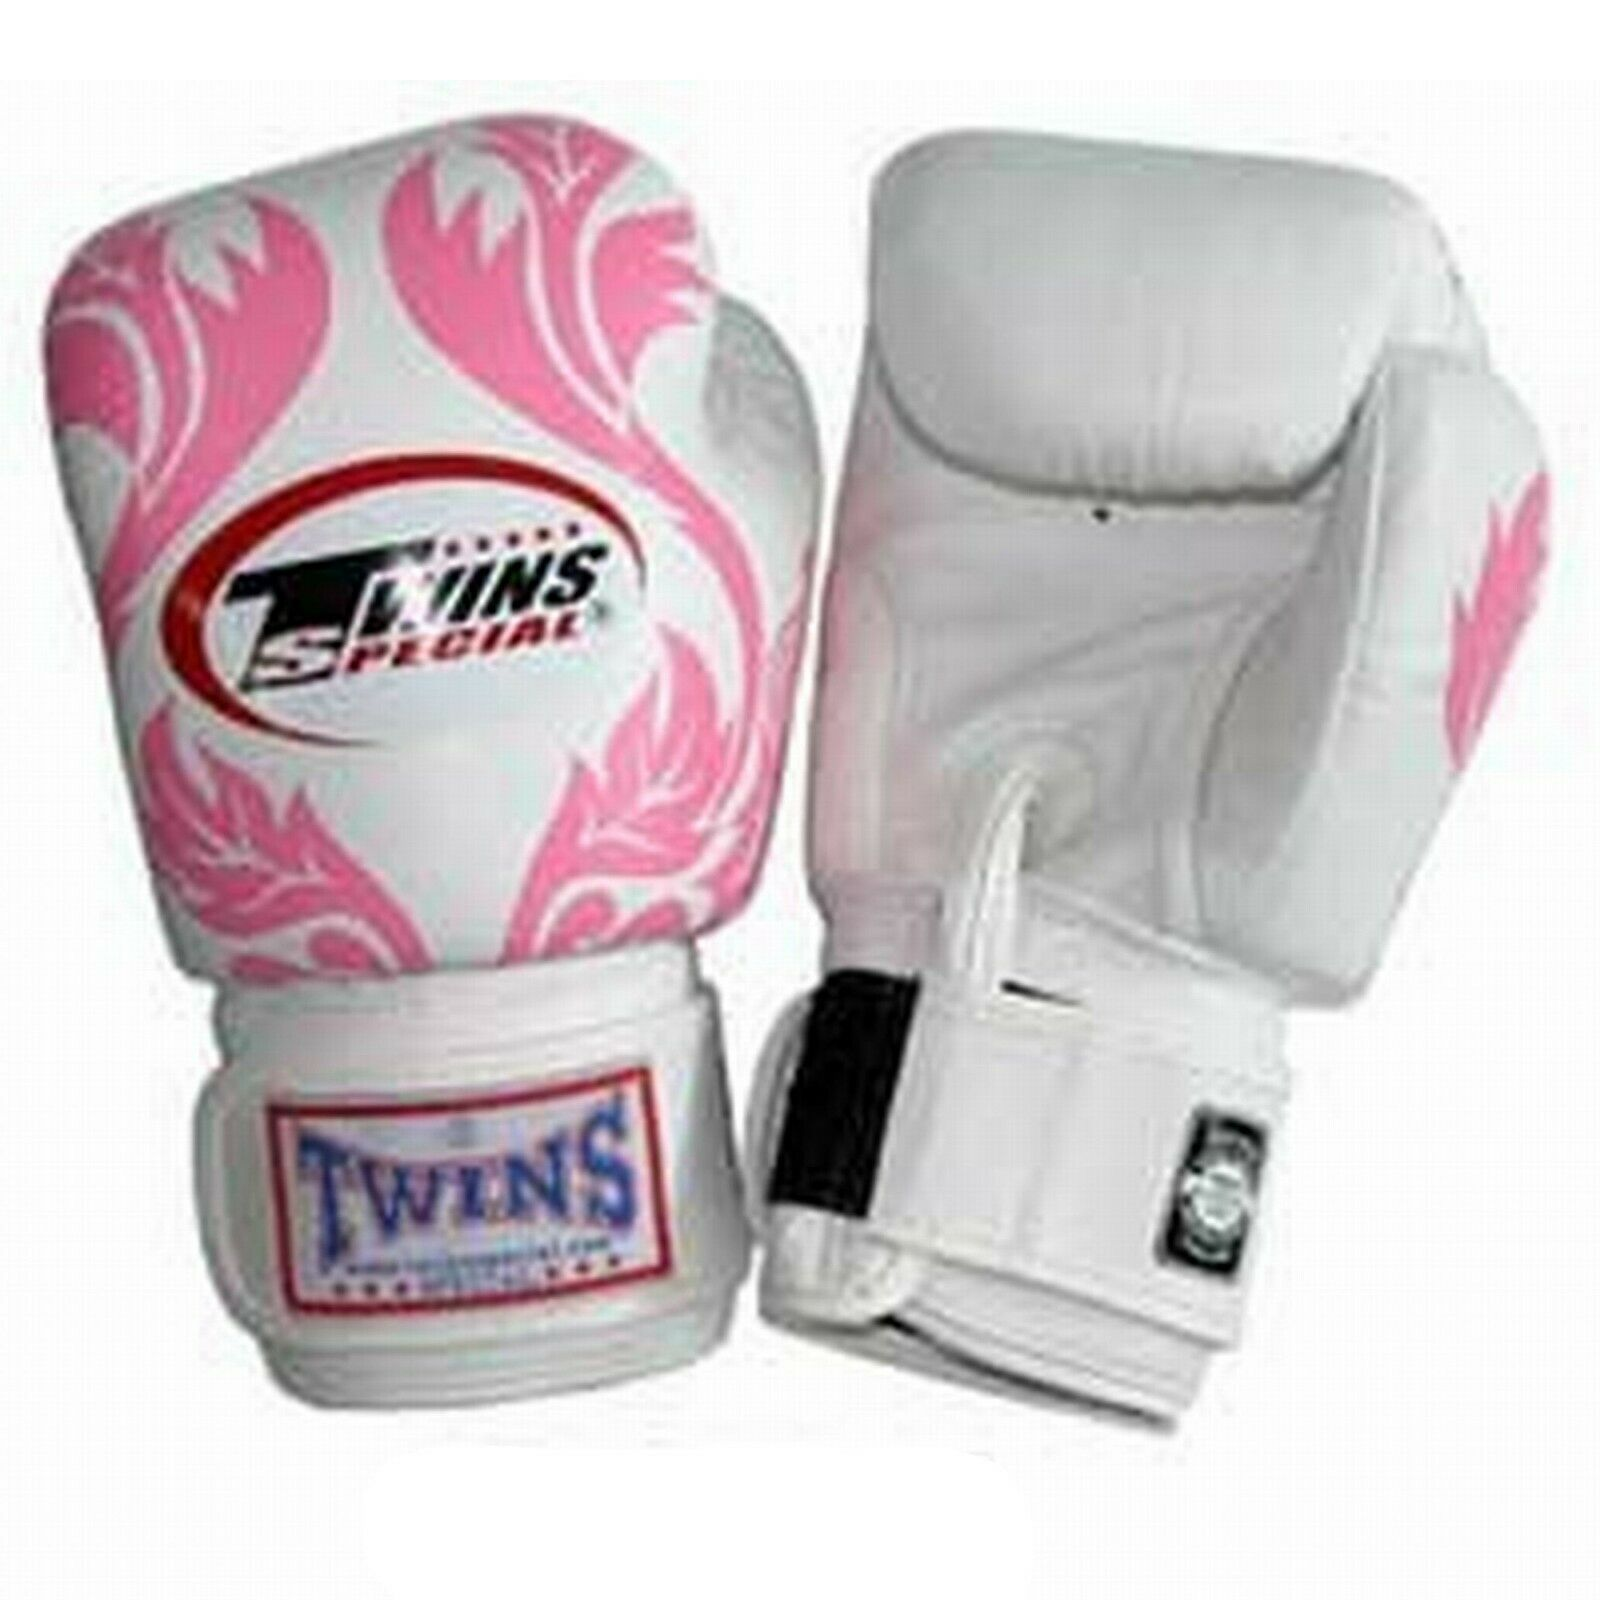 Twins Special FBGV-11 Sporting Training  MMA Martial Arts Muay Thai Boxing G s  low 40% price